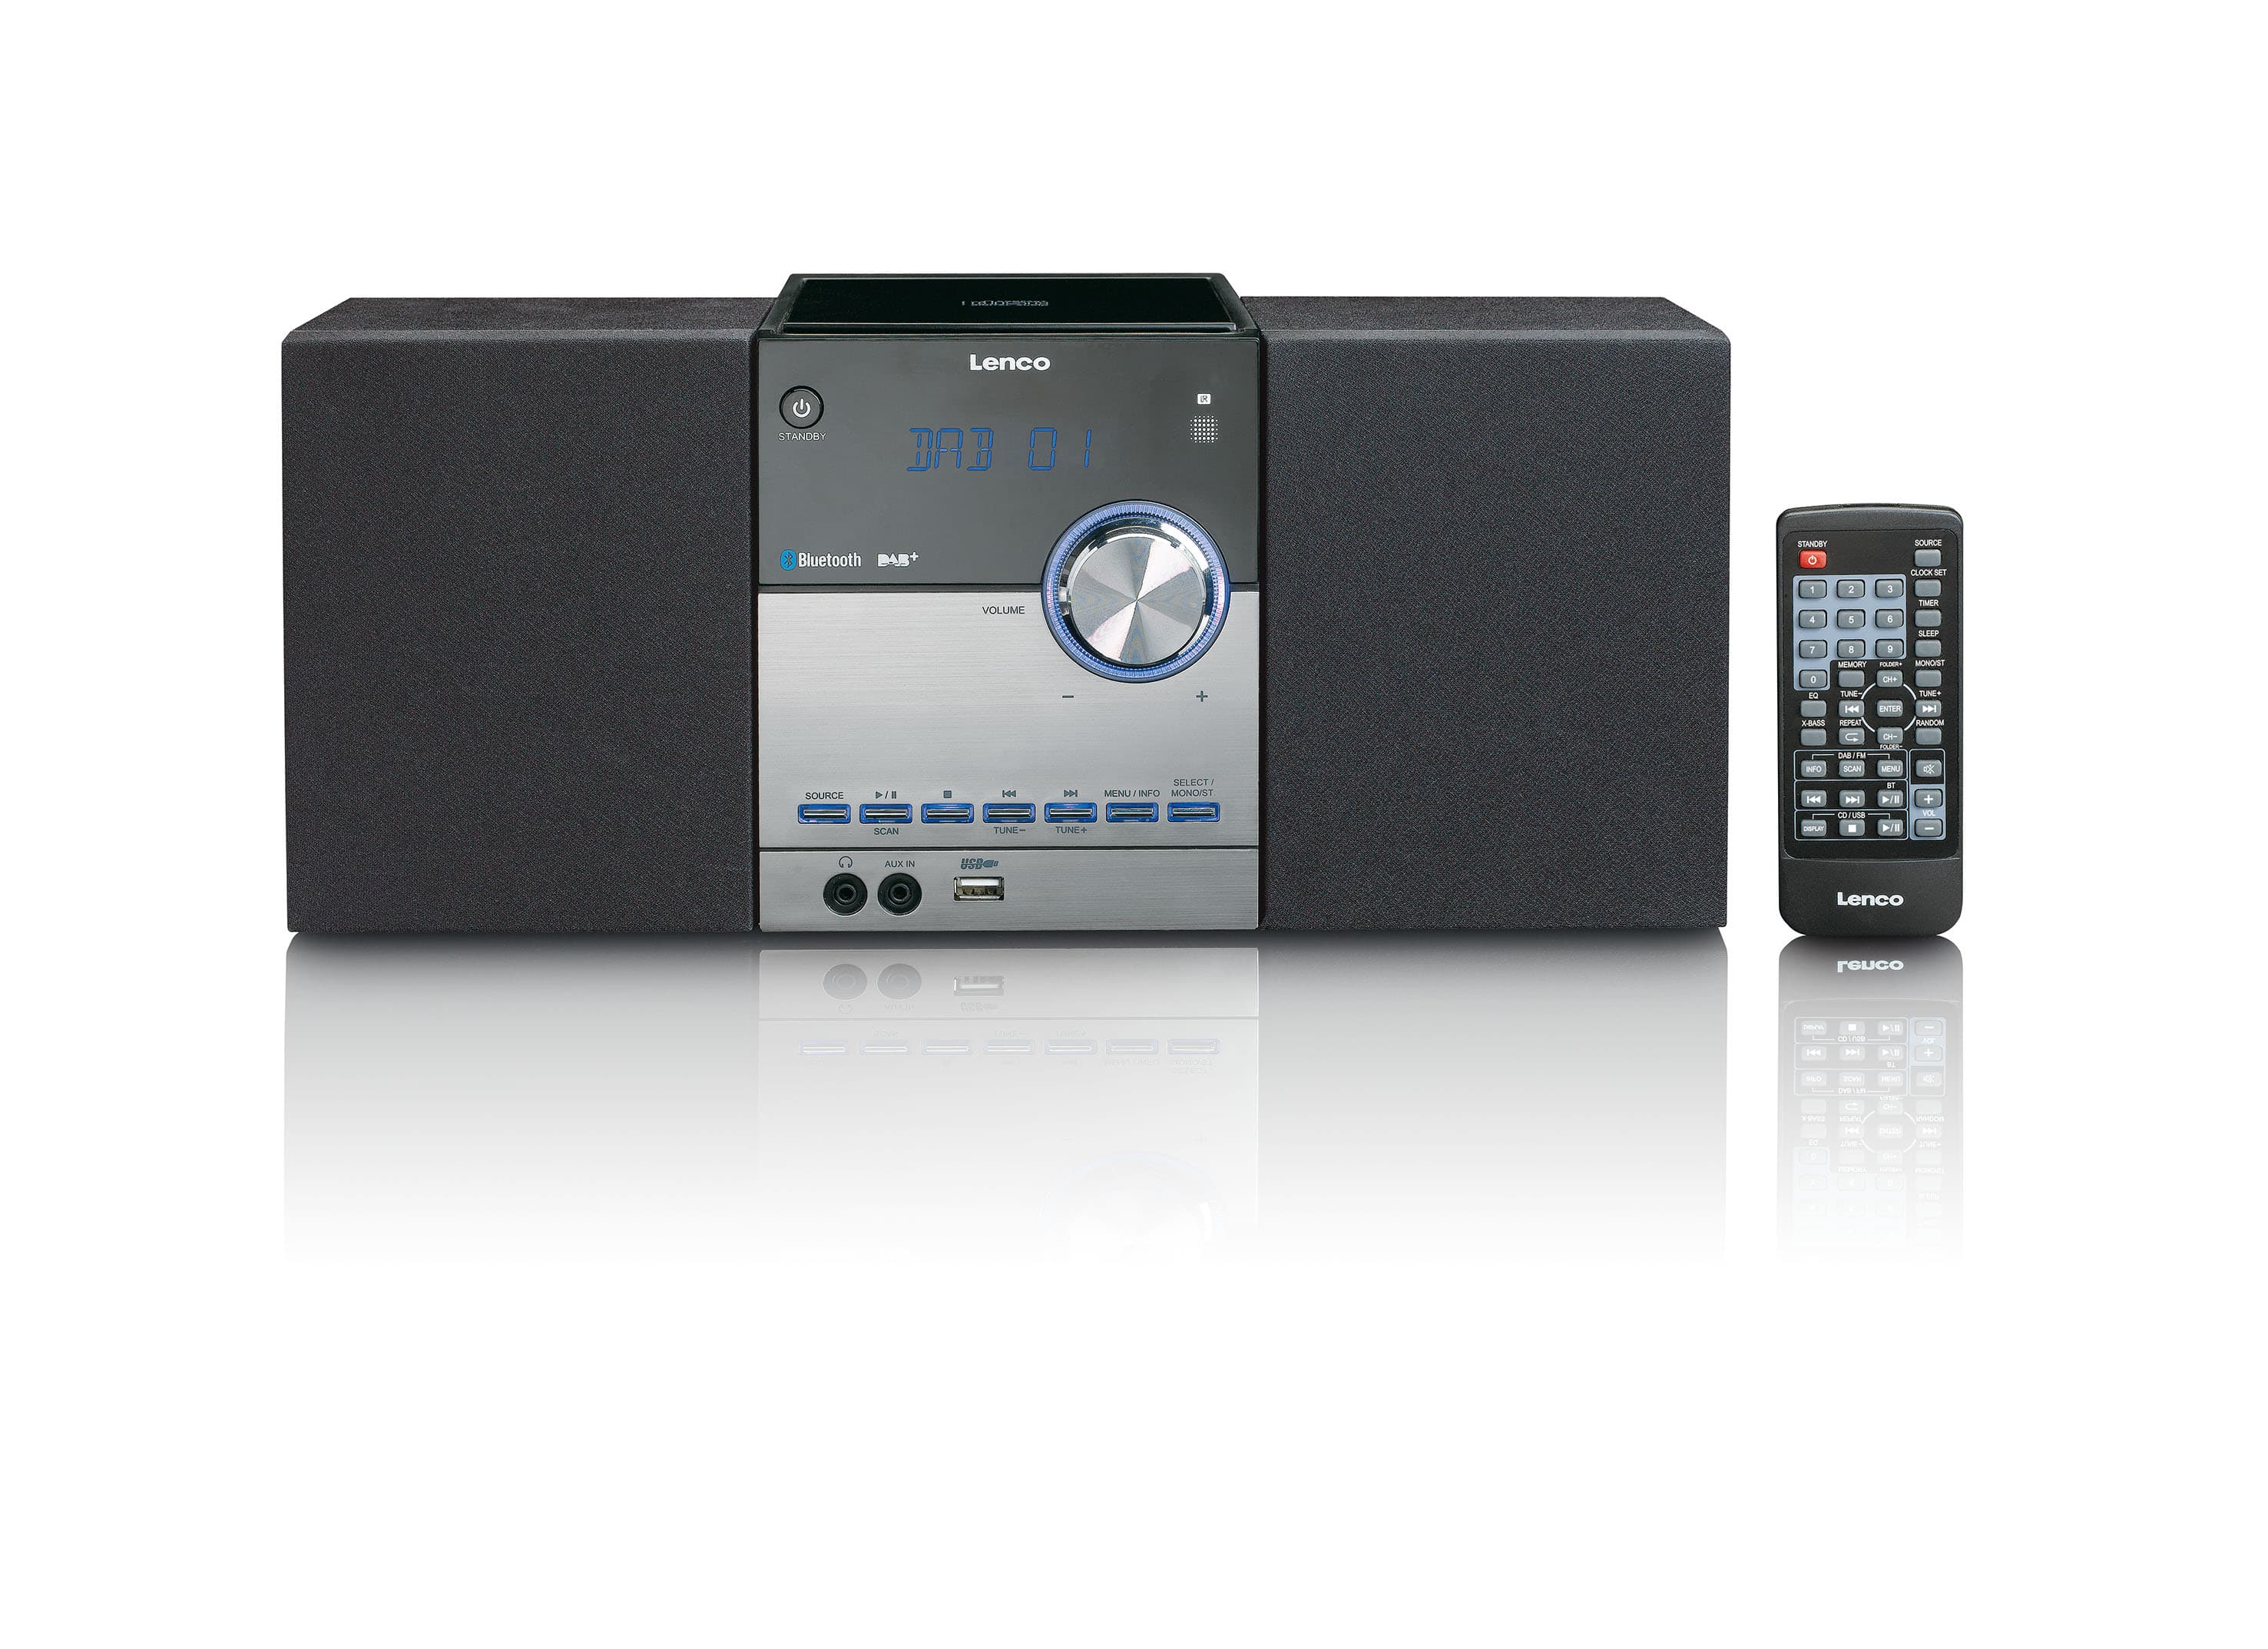 Lenco MC-150 CD Payer DAB,DAB+,FM,PLL Radio für 119,00 Euro